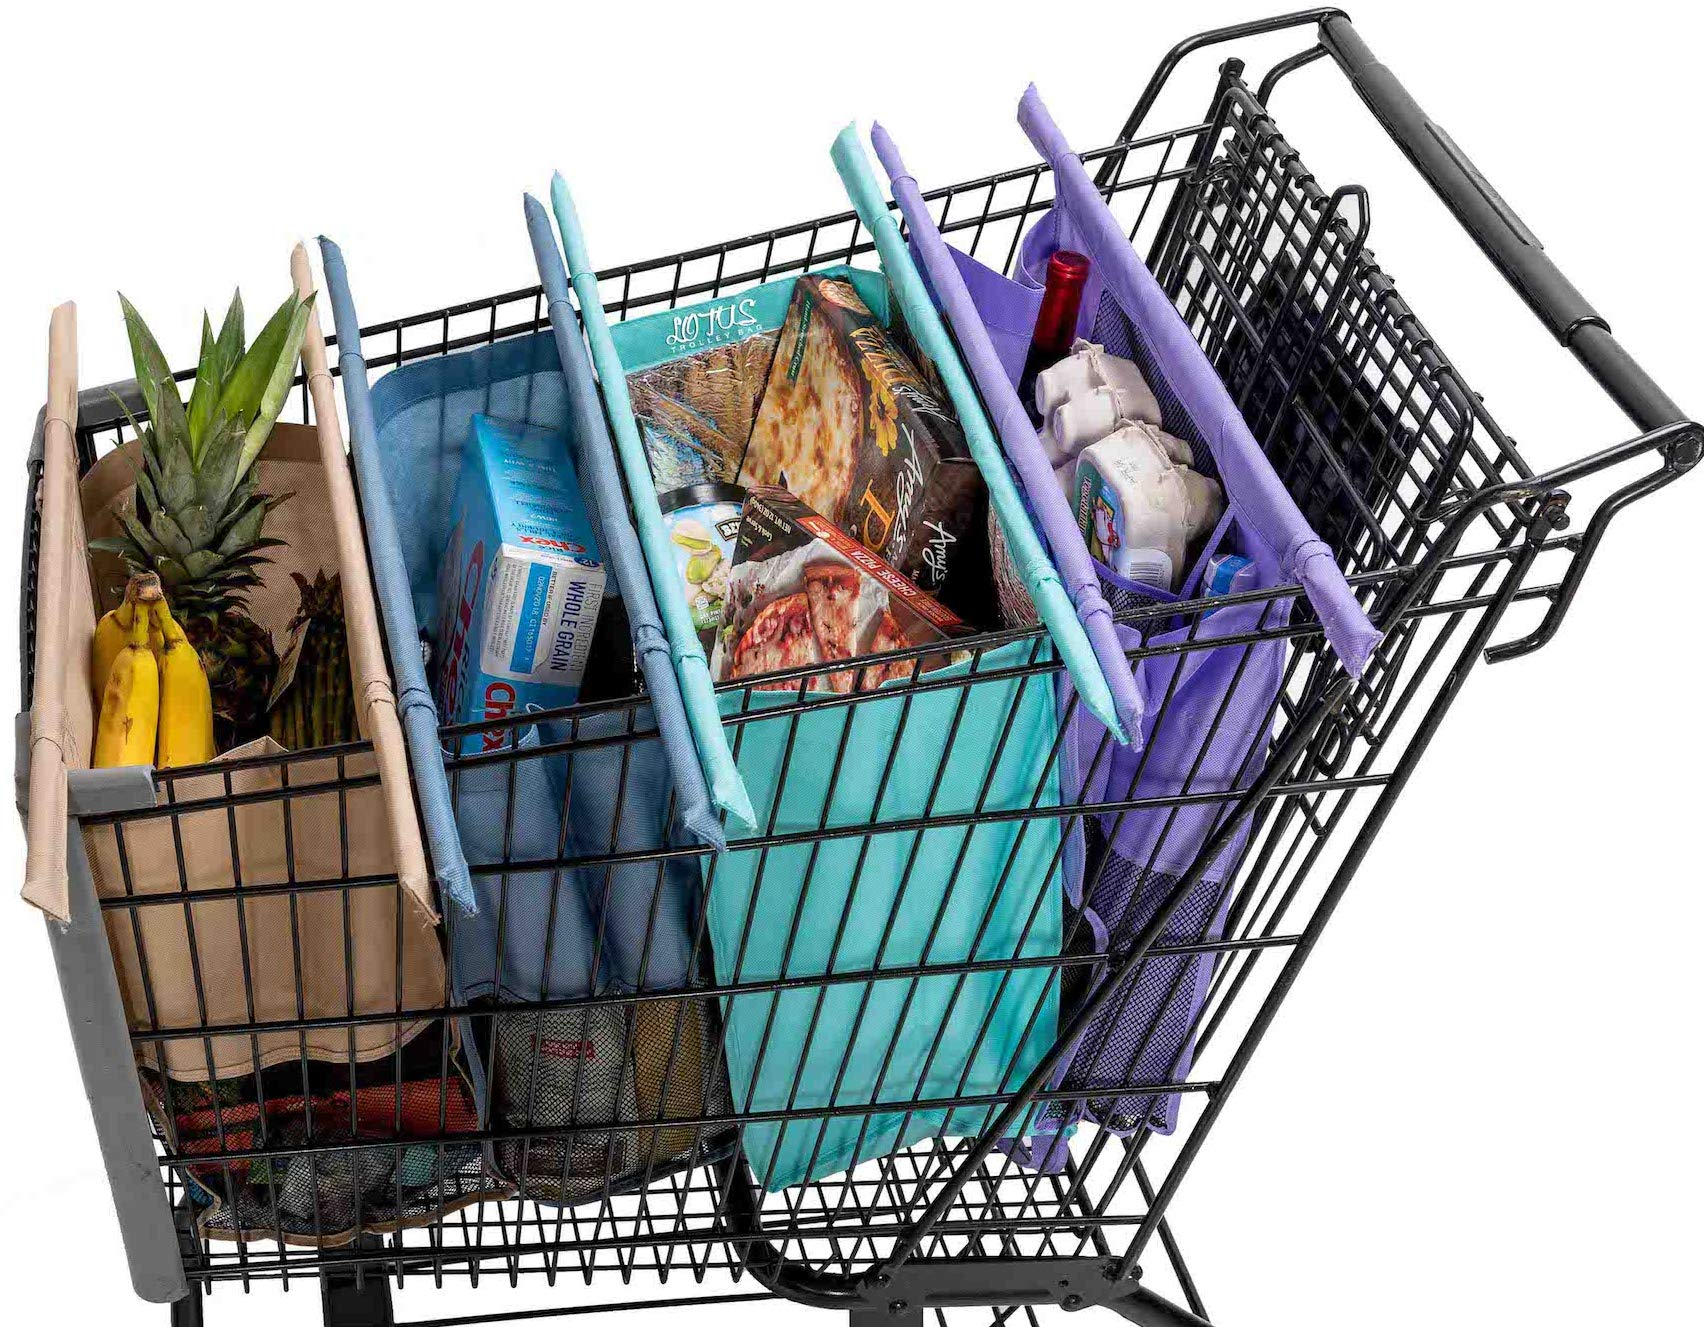 Lotus Trolley Bags -set of 4 -w/LRG COOLER Bag & Egg/Wine holder! Reusable Grocery Cart Bags sized for USA. Eco-friendly 4-Bag Grocery Tote. (Purple, Turquoise, Blue, Brown,) by LOTUS TROLLEY BAG ECO-FRIENDLY. REUSABLE. BEAUTIFUL.